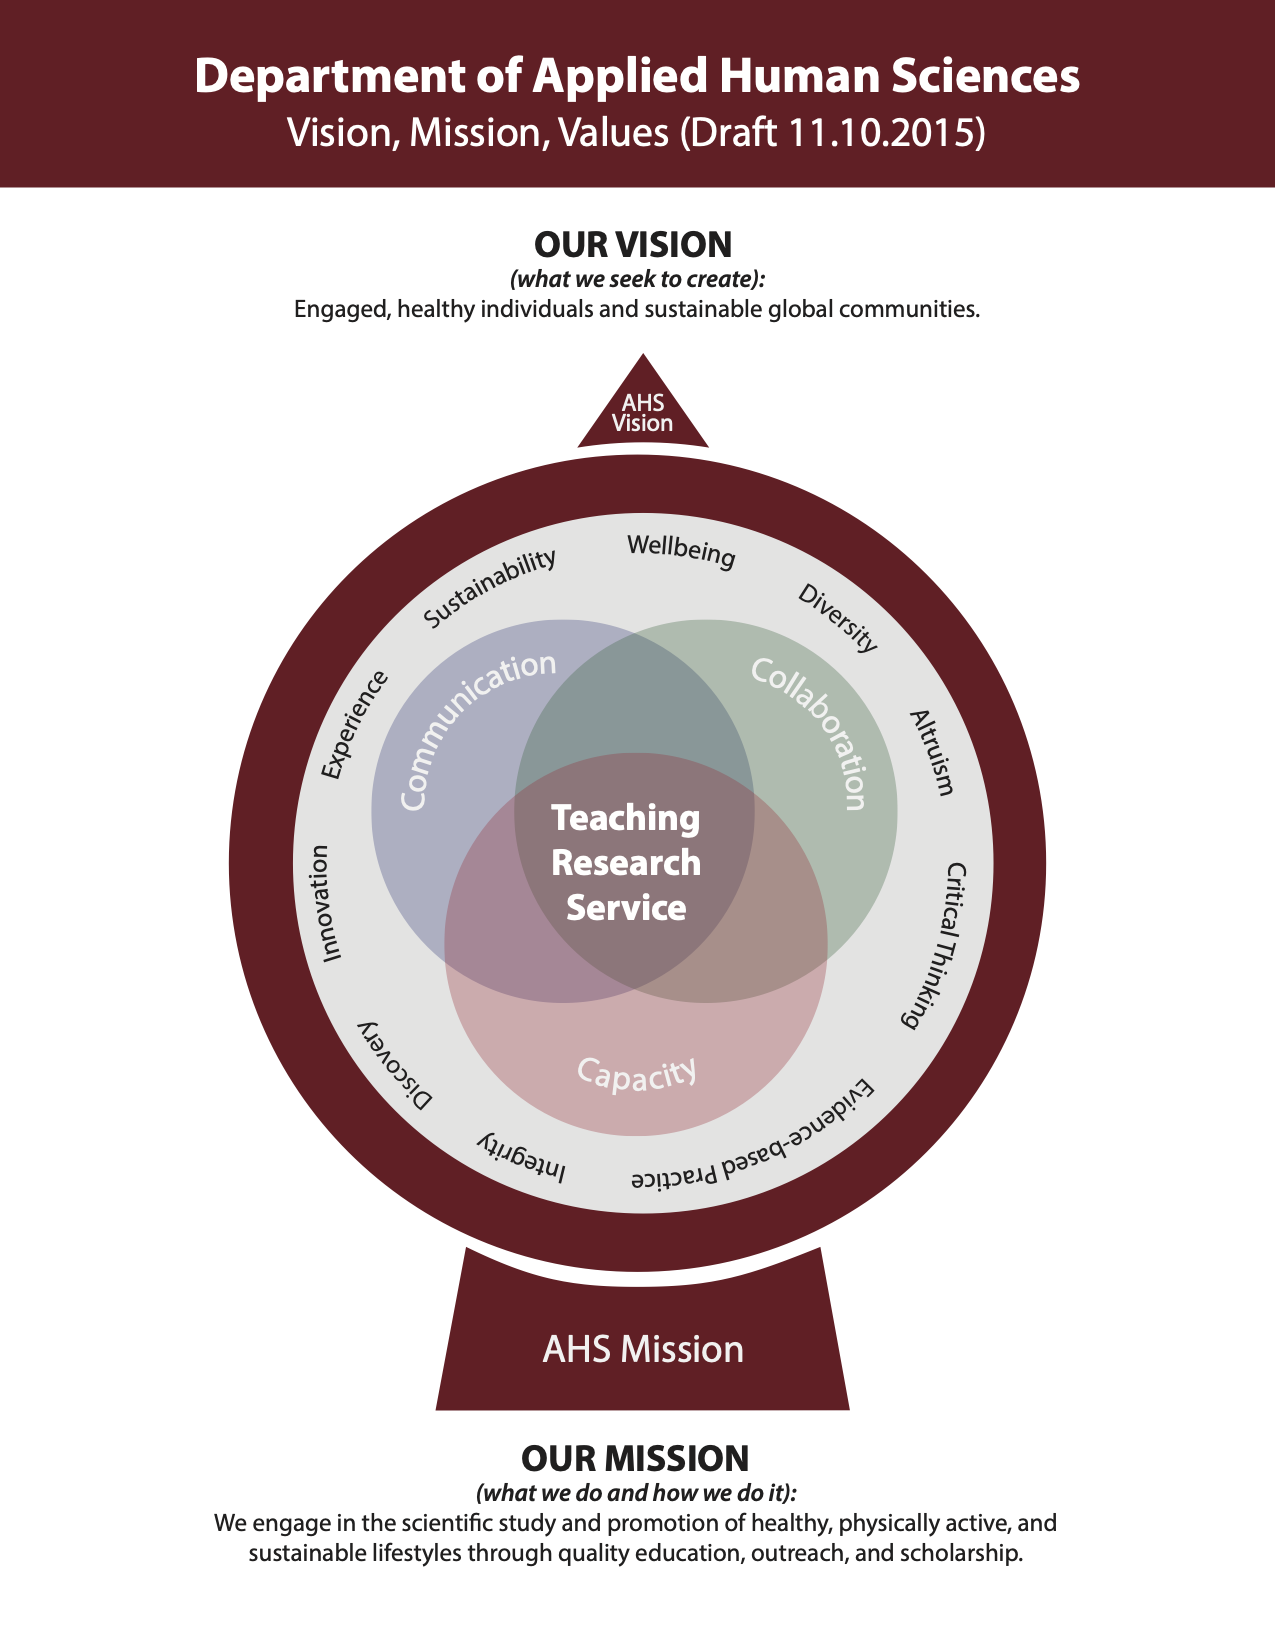 Applied Human Sciences vision, mission, and values words integrated into a compass graphic